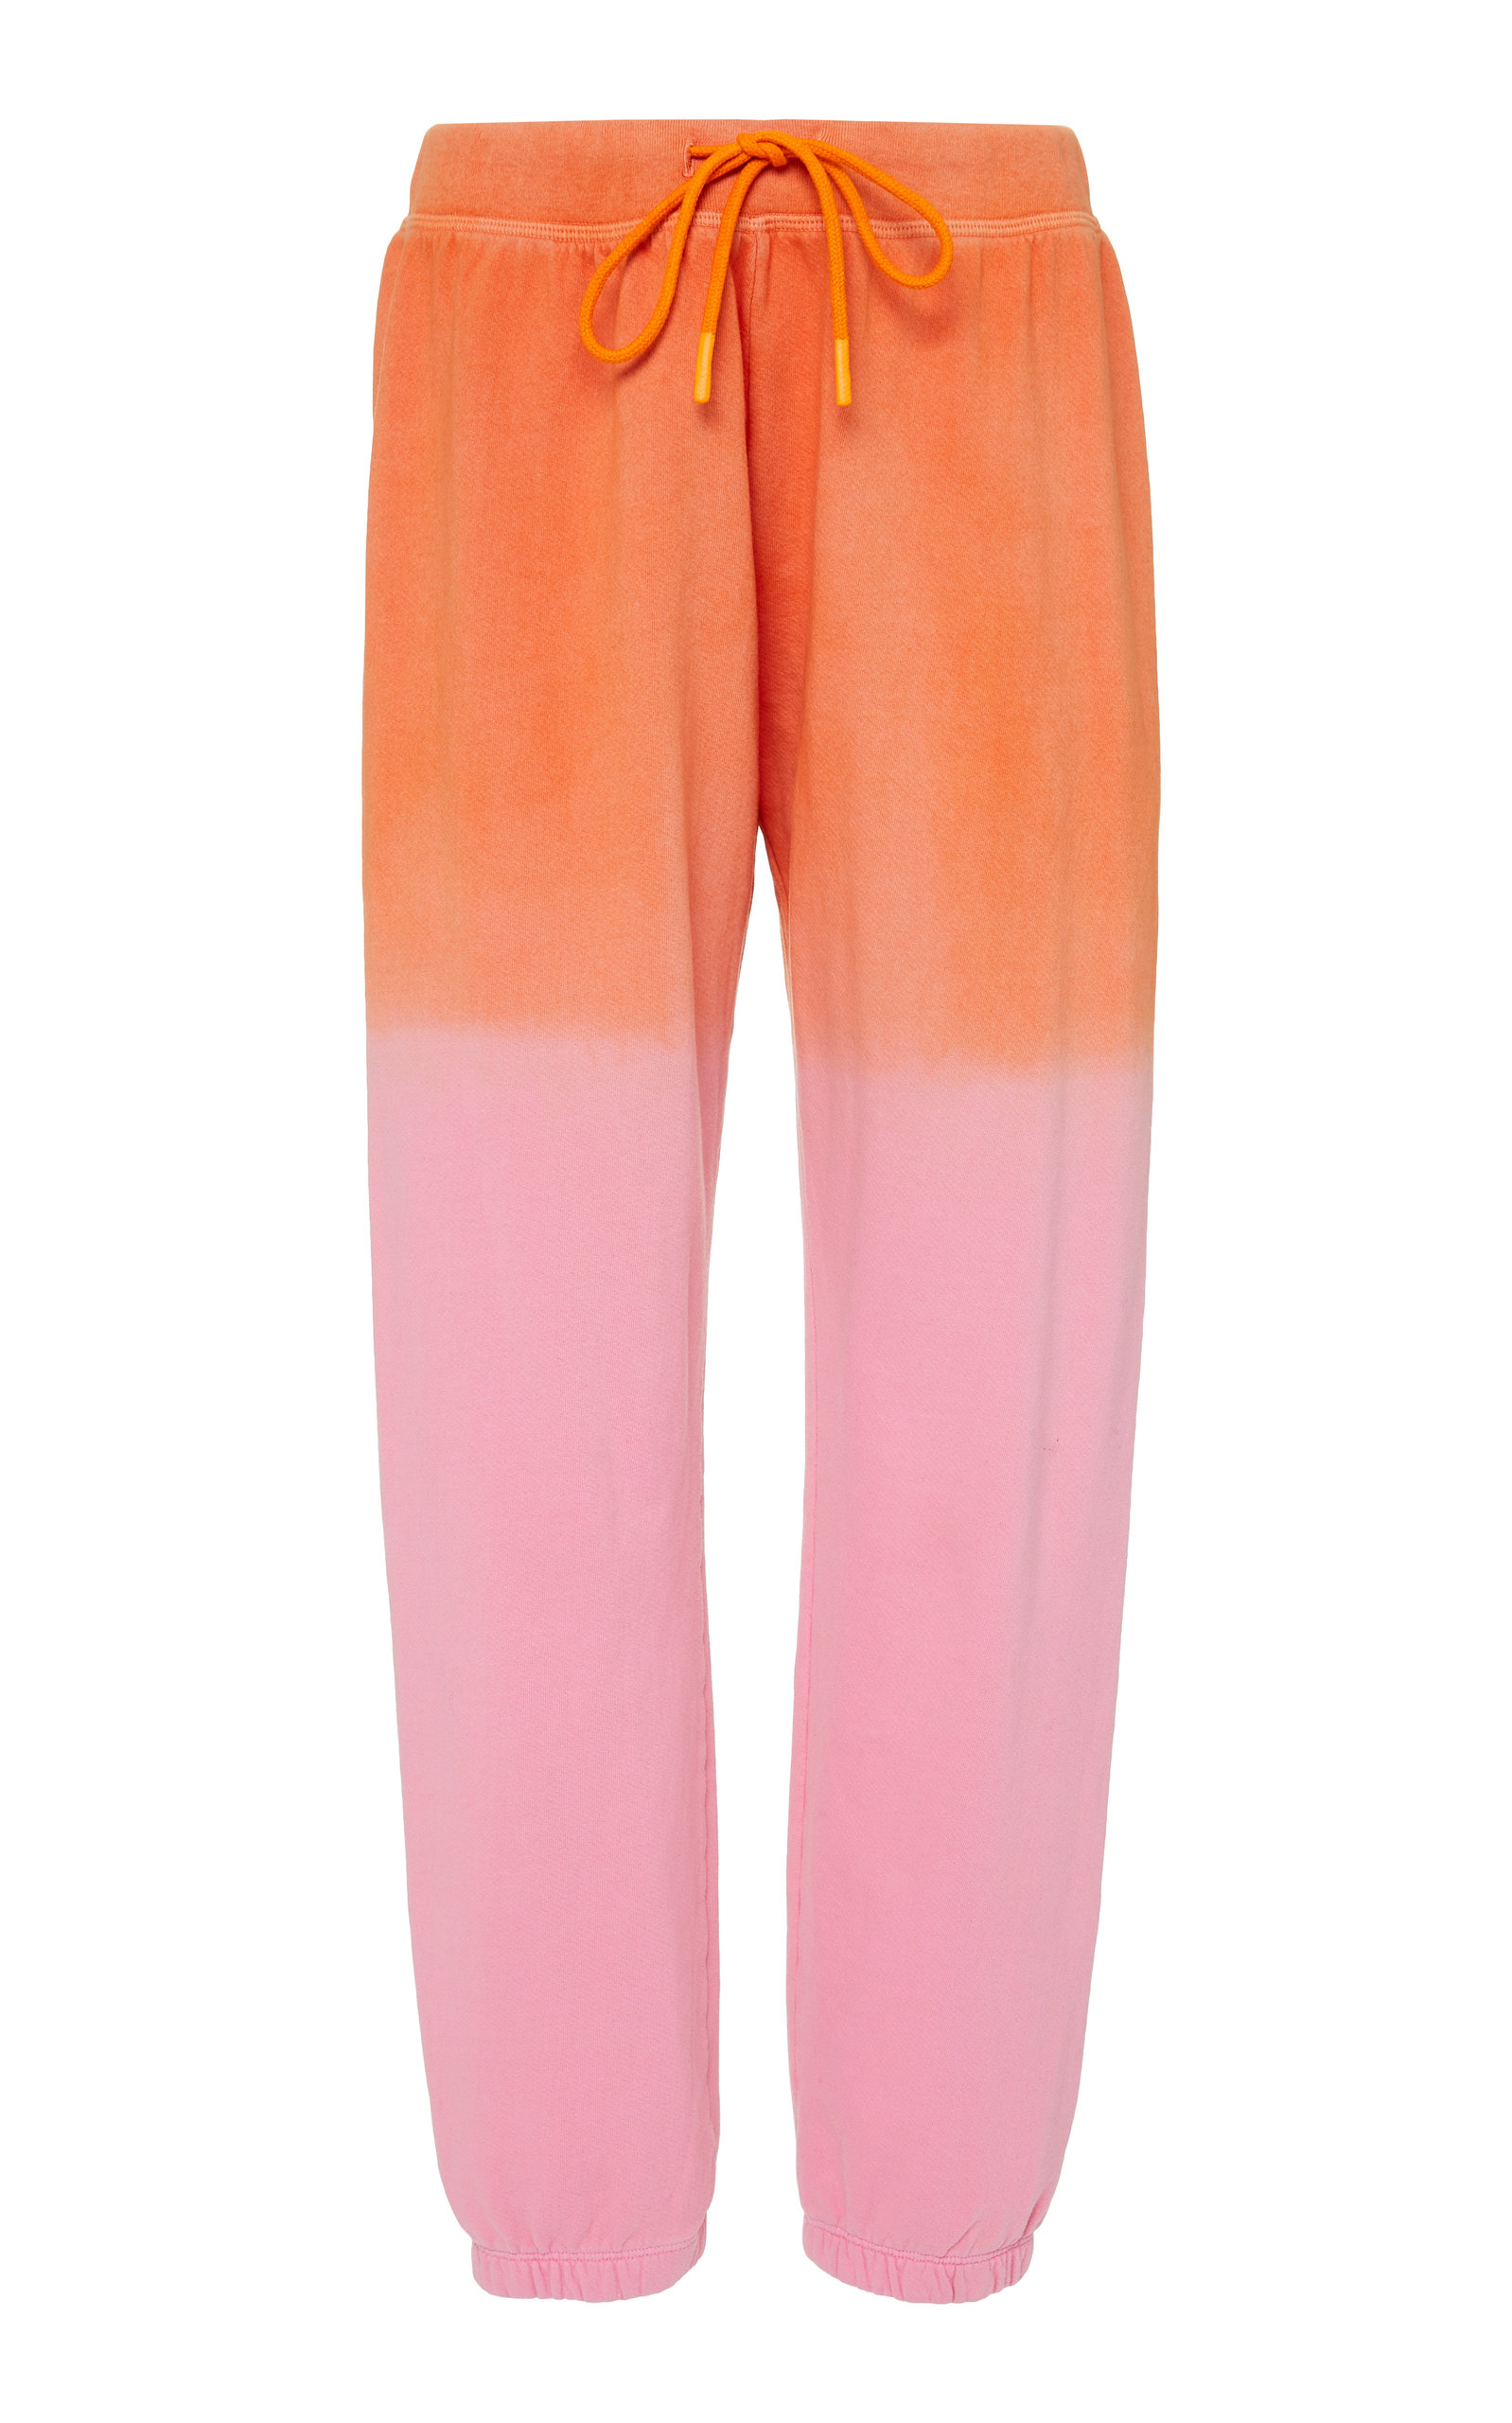 Splits59 CHARLIE OMBRE SWEATPANTS